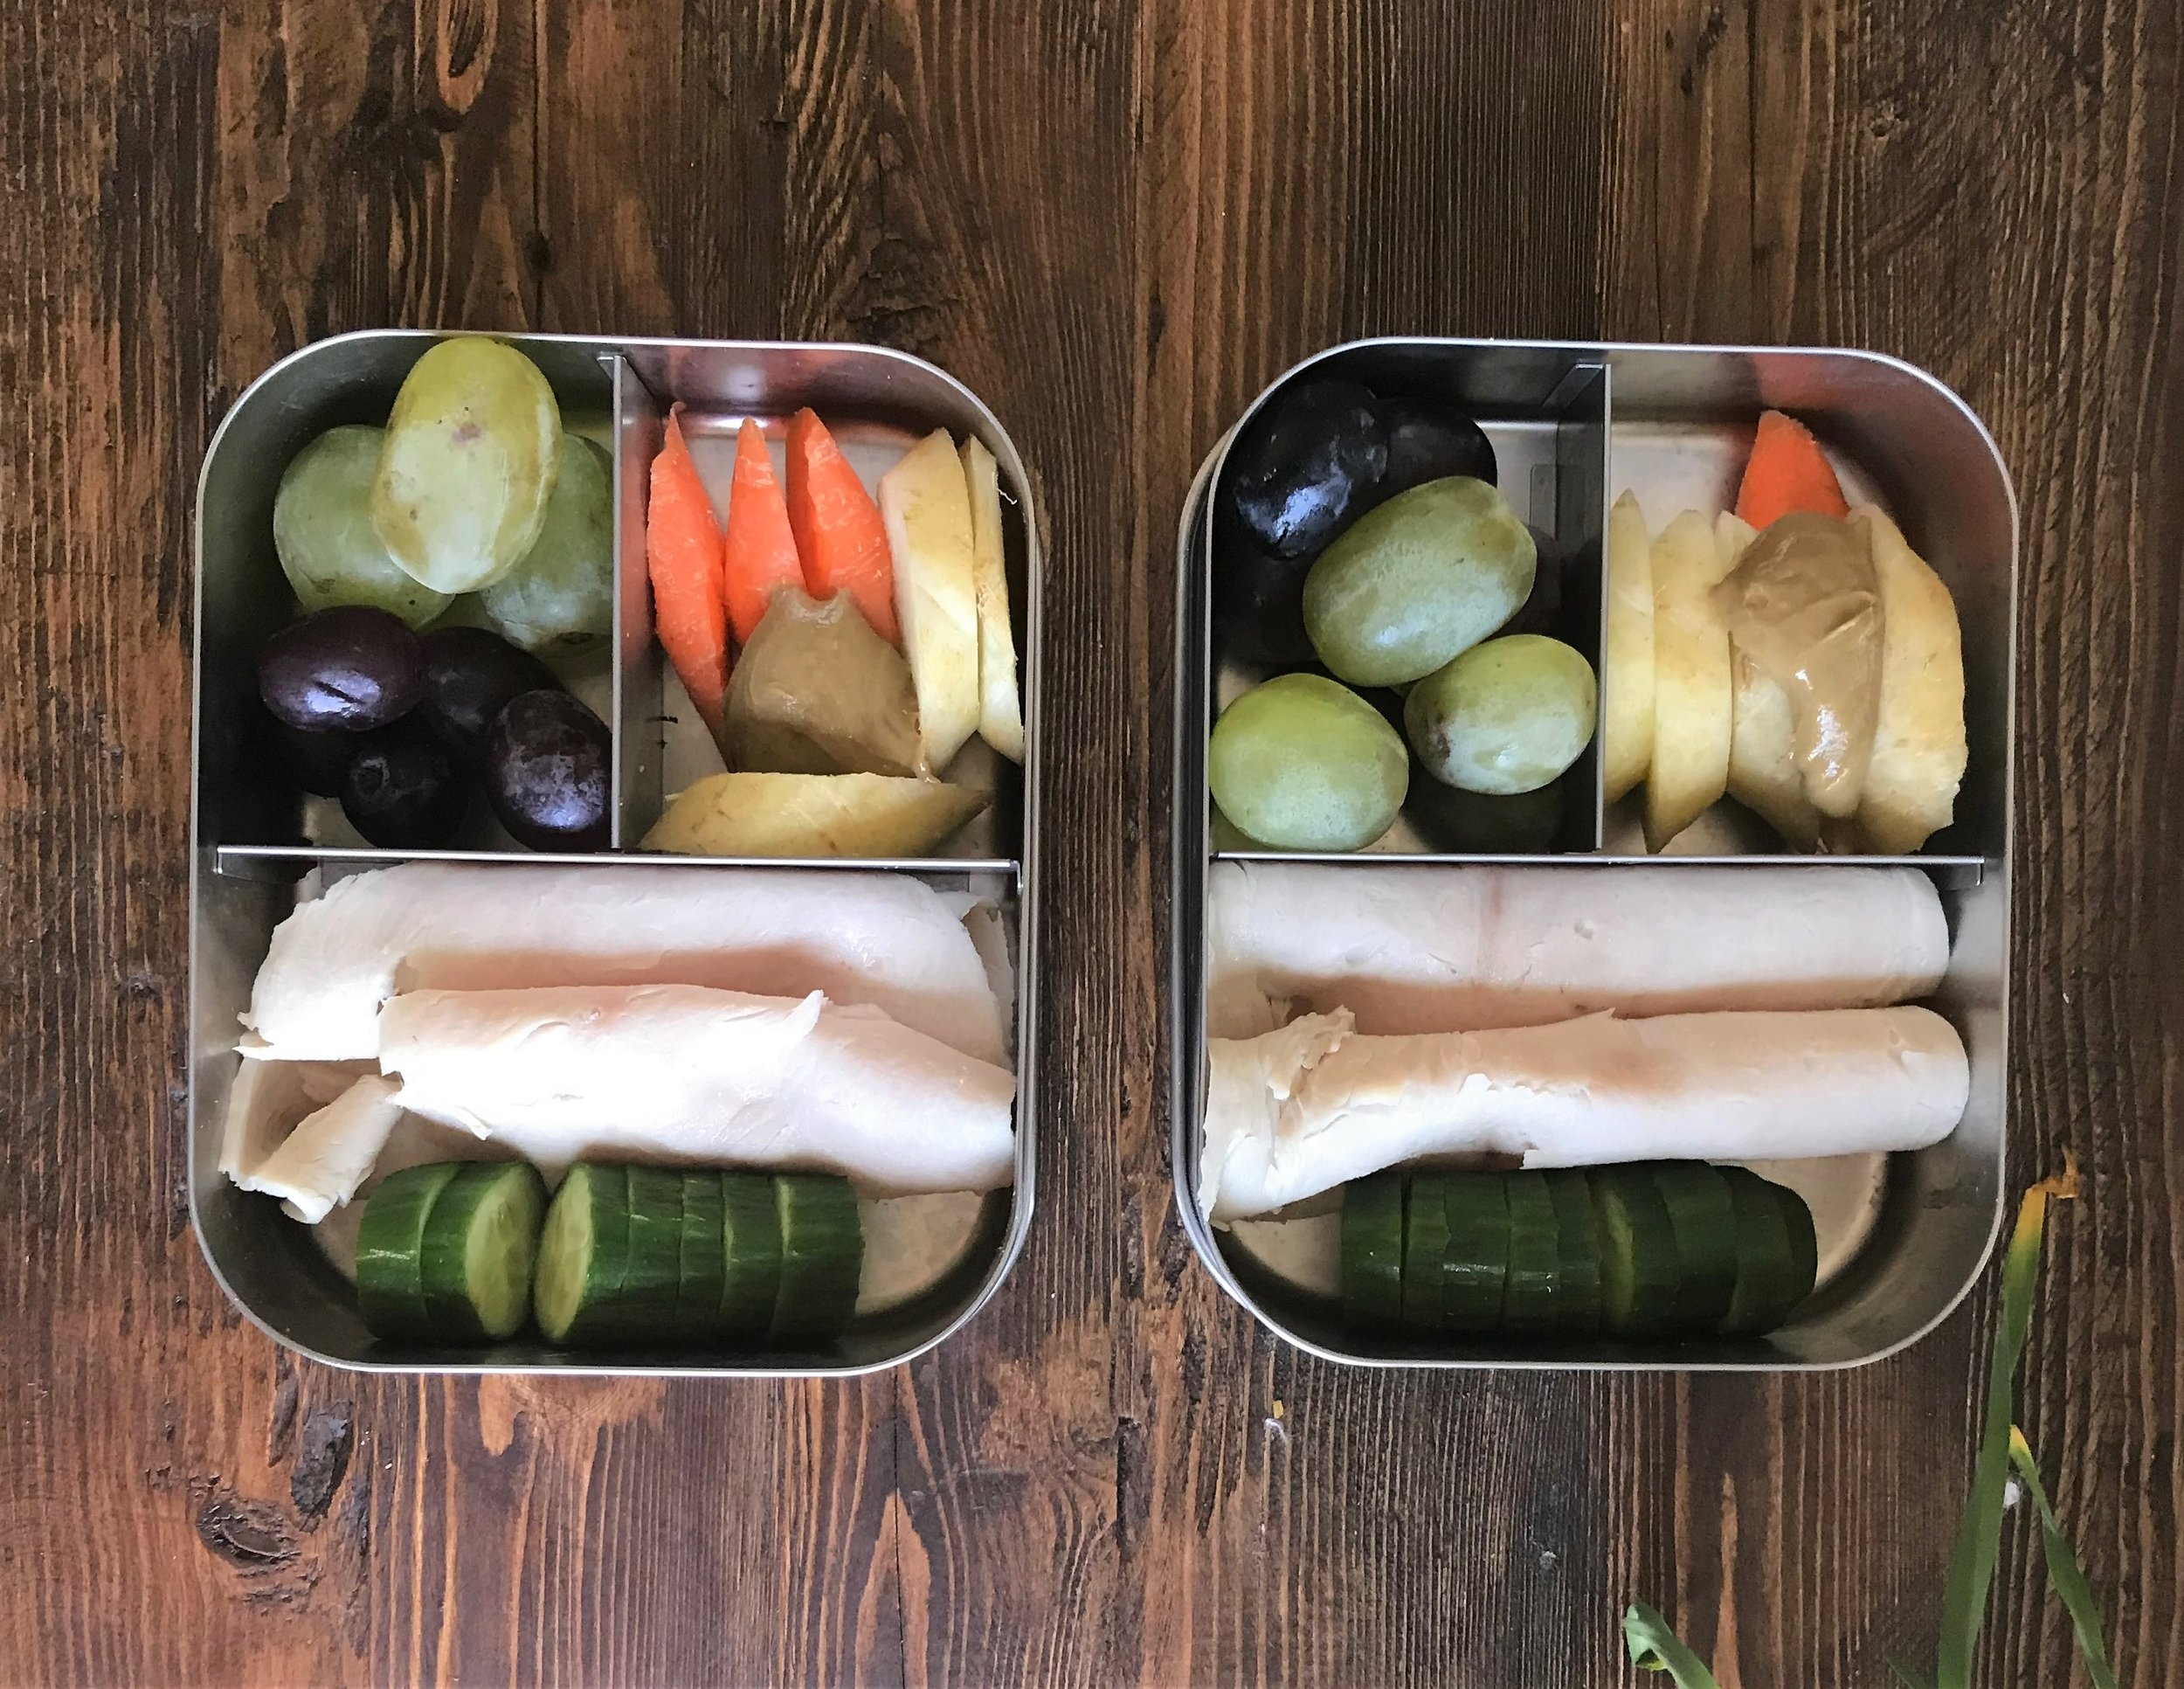 Bottom: Turkey, cucumbers  Left corner: green and purple grapes  Right corner: carrots and sunflower butter